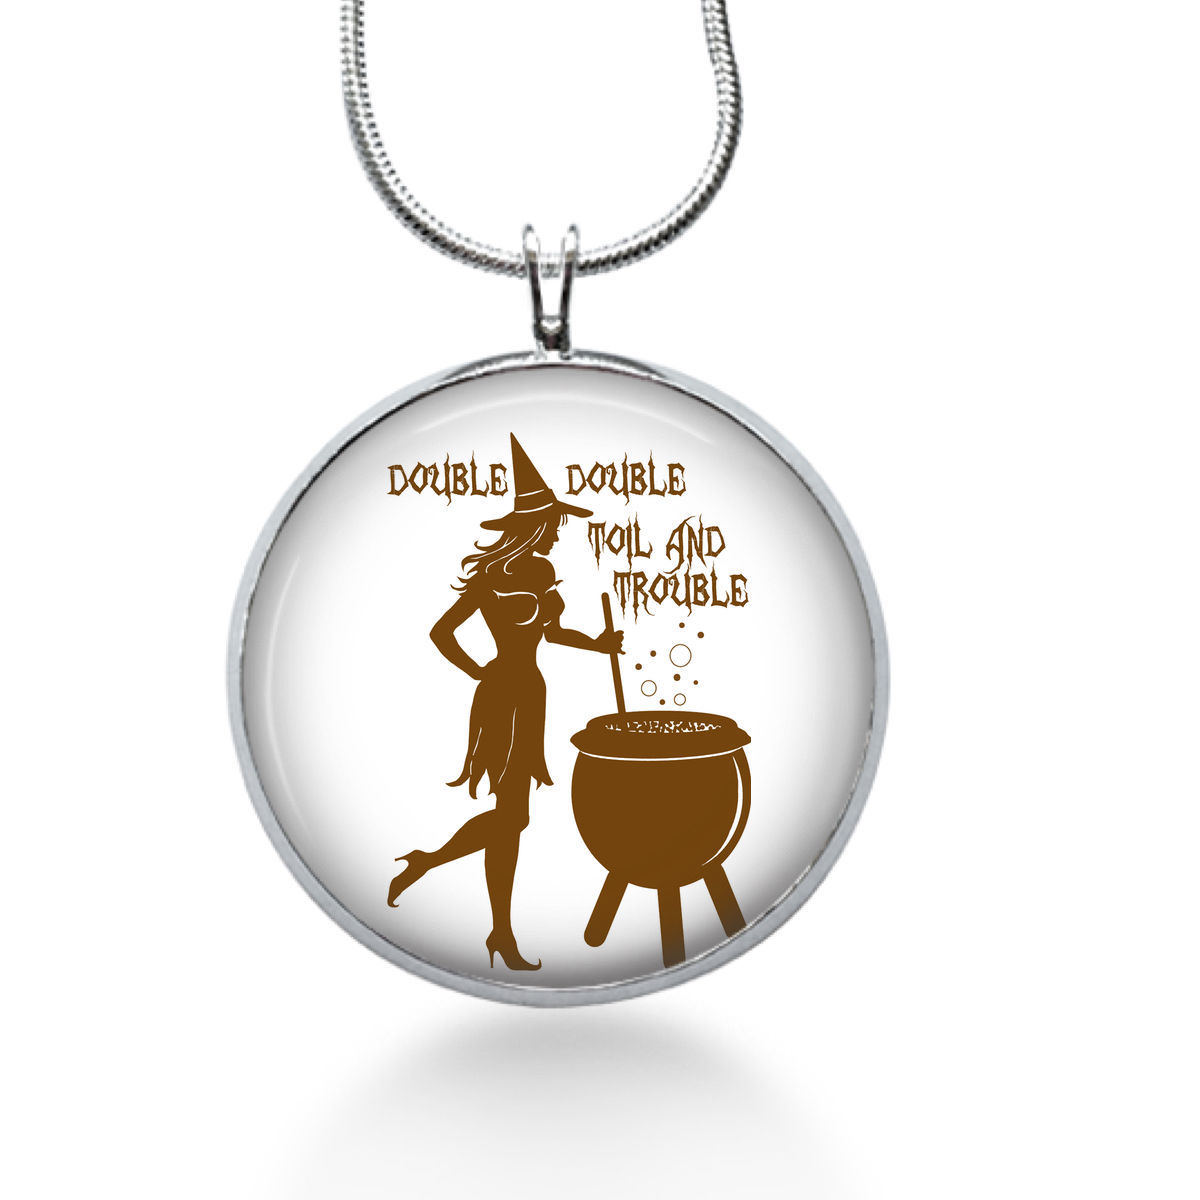 Primary image for Double Double Toil and Trouble Pendant Necklace, Witch Pendant, Halloween